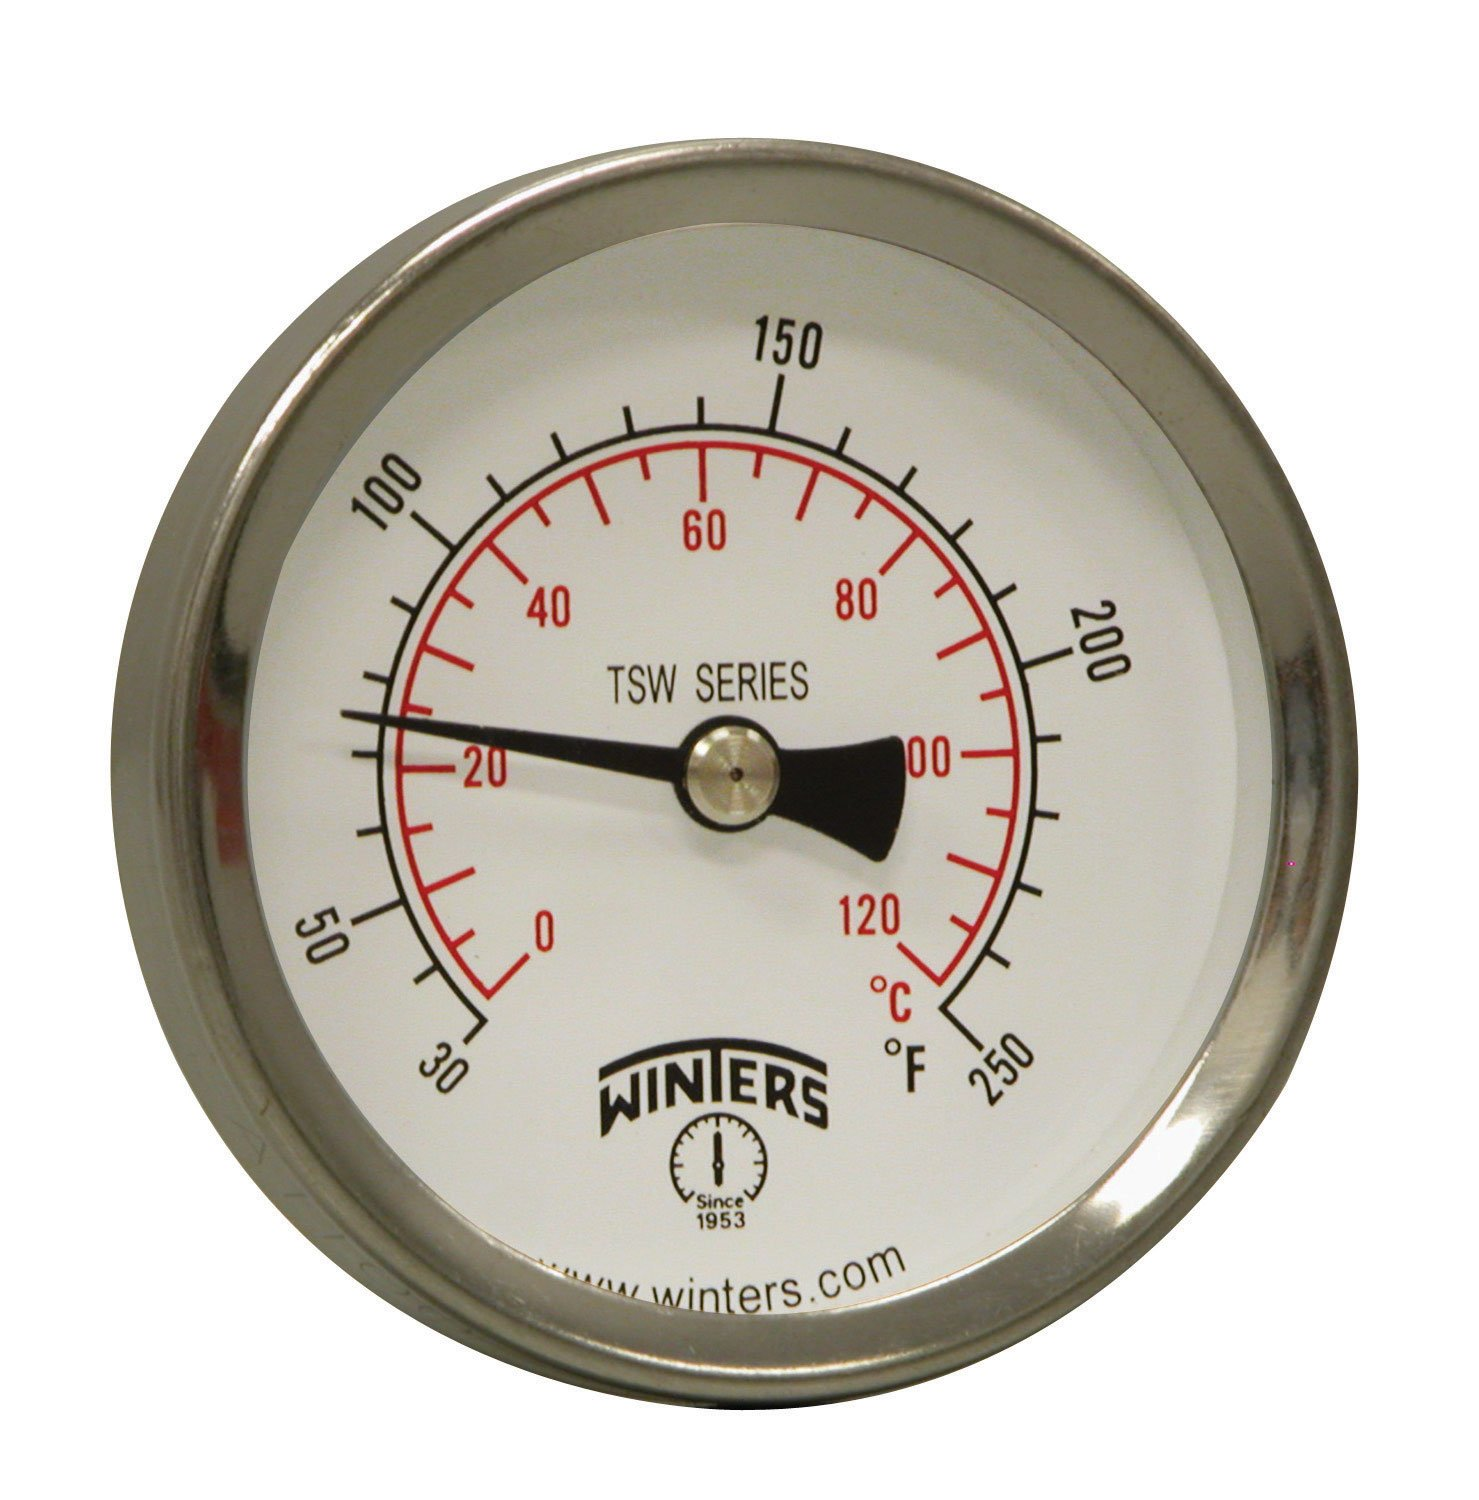 Winters TSW Series Aluminum Dual Scale Hot Water Thermometer, Dial Type, 2-1/2'' Dial, 1/2'' NPT Center Back Mount, 30-250 F/C Range by Winters Instruments